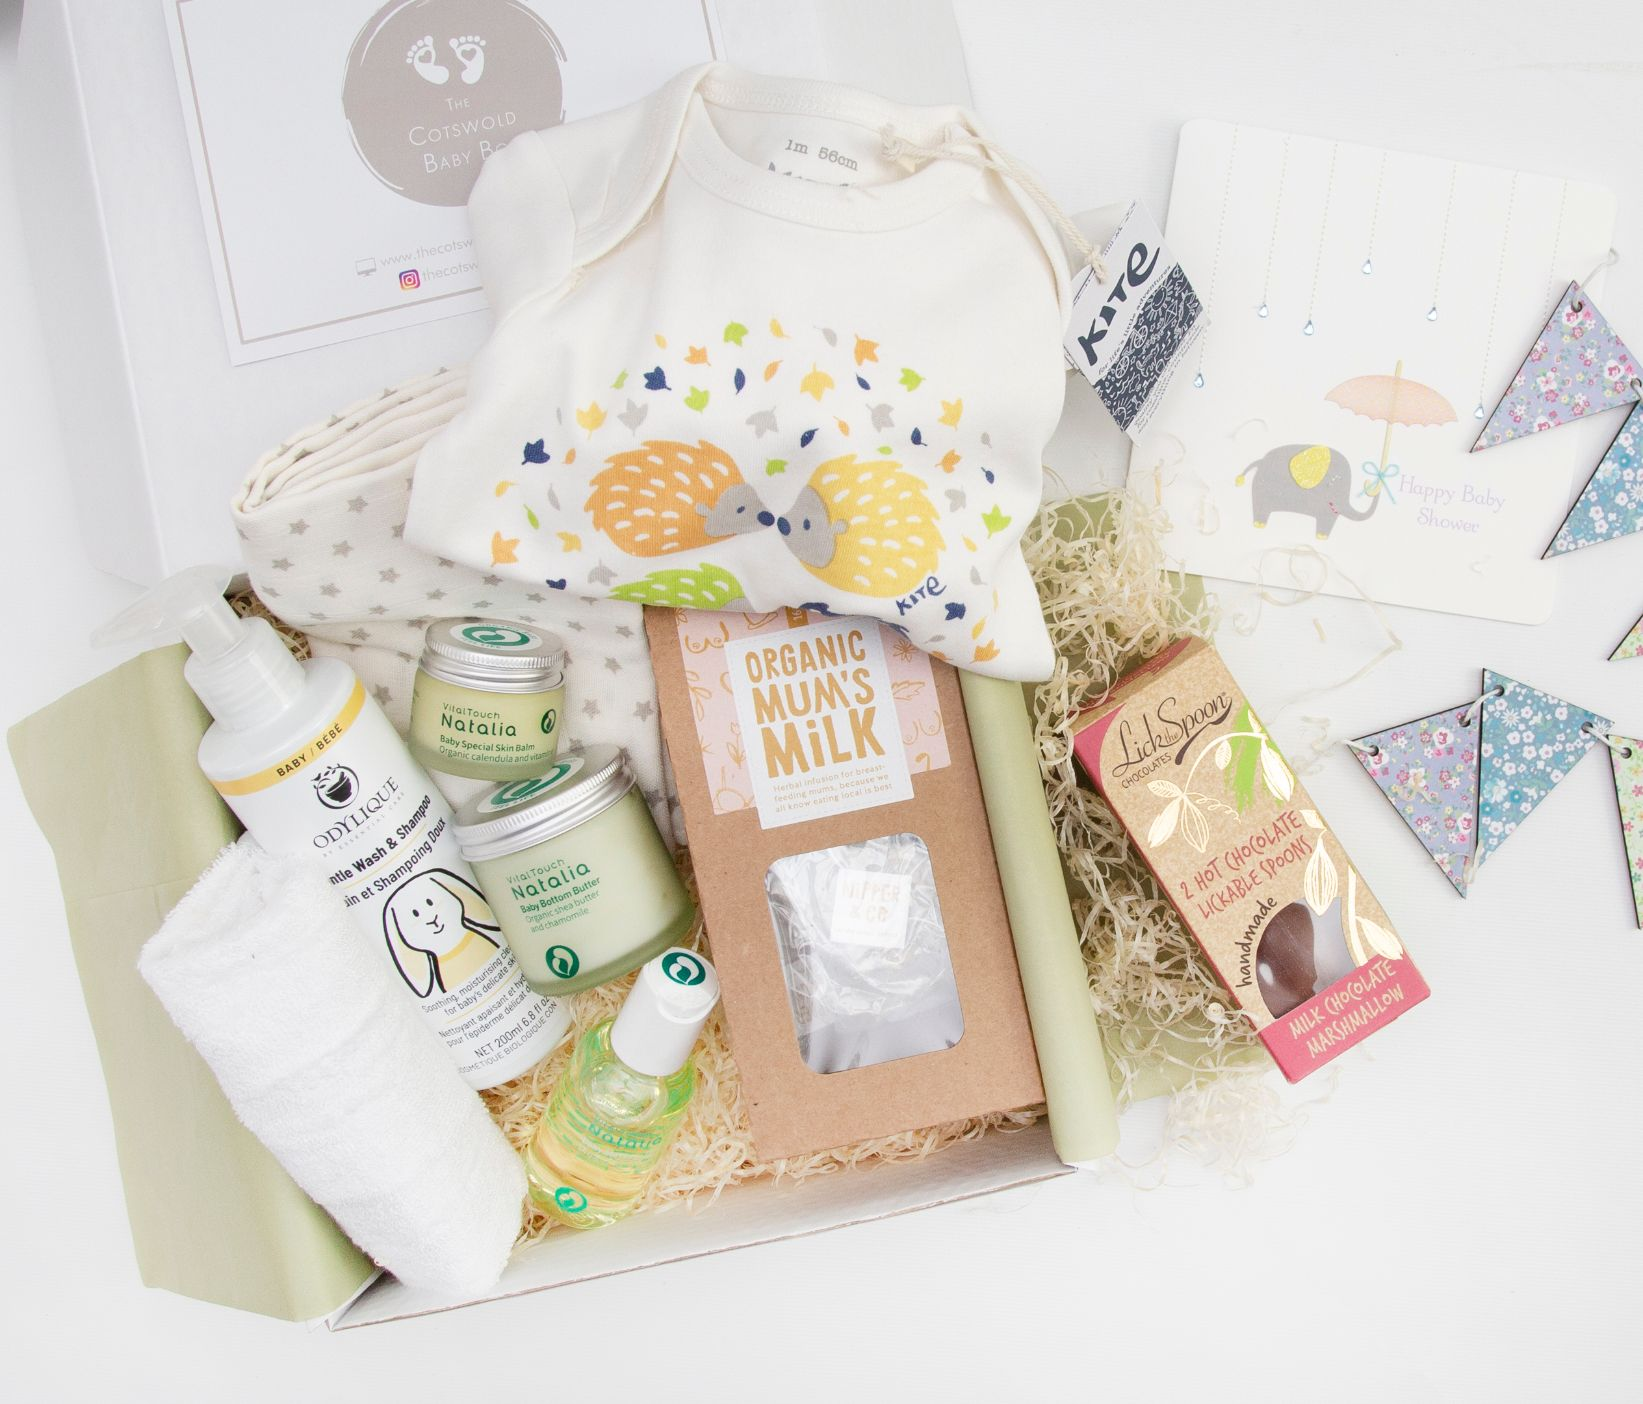 The Cotswold Baby Box